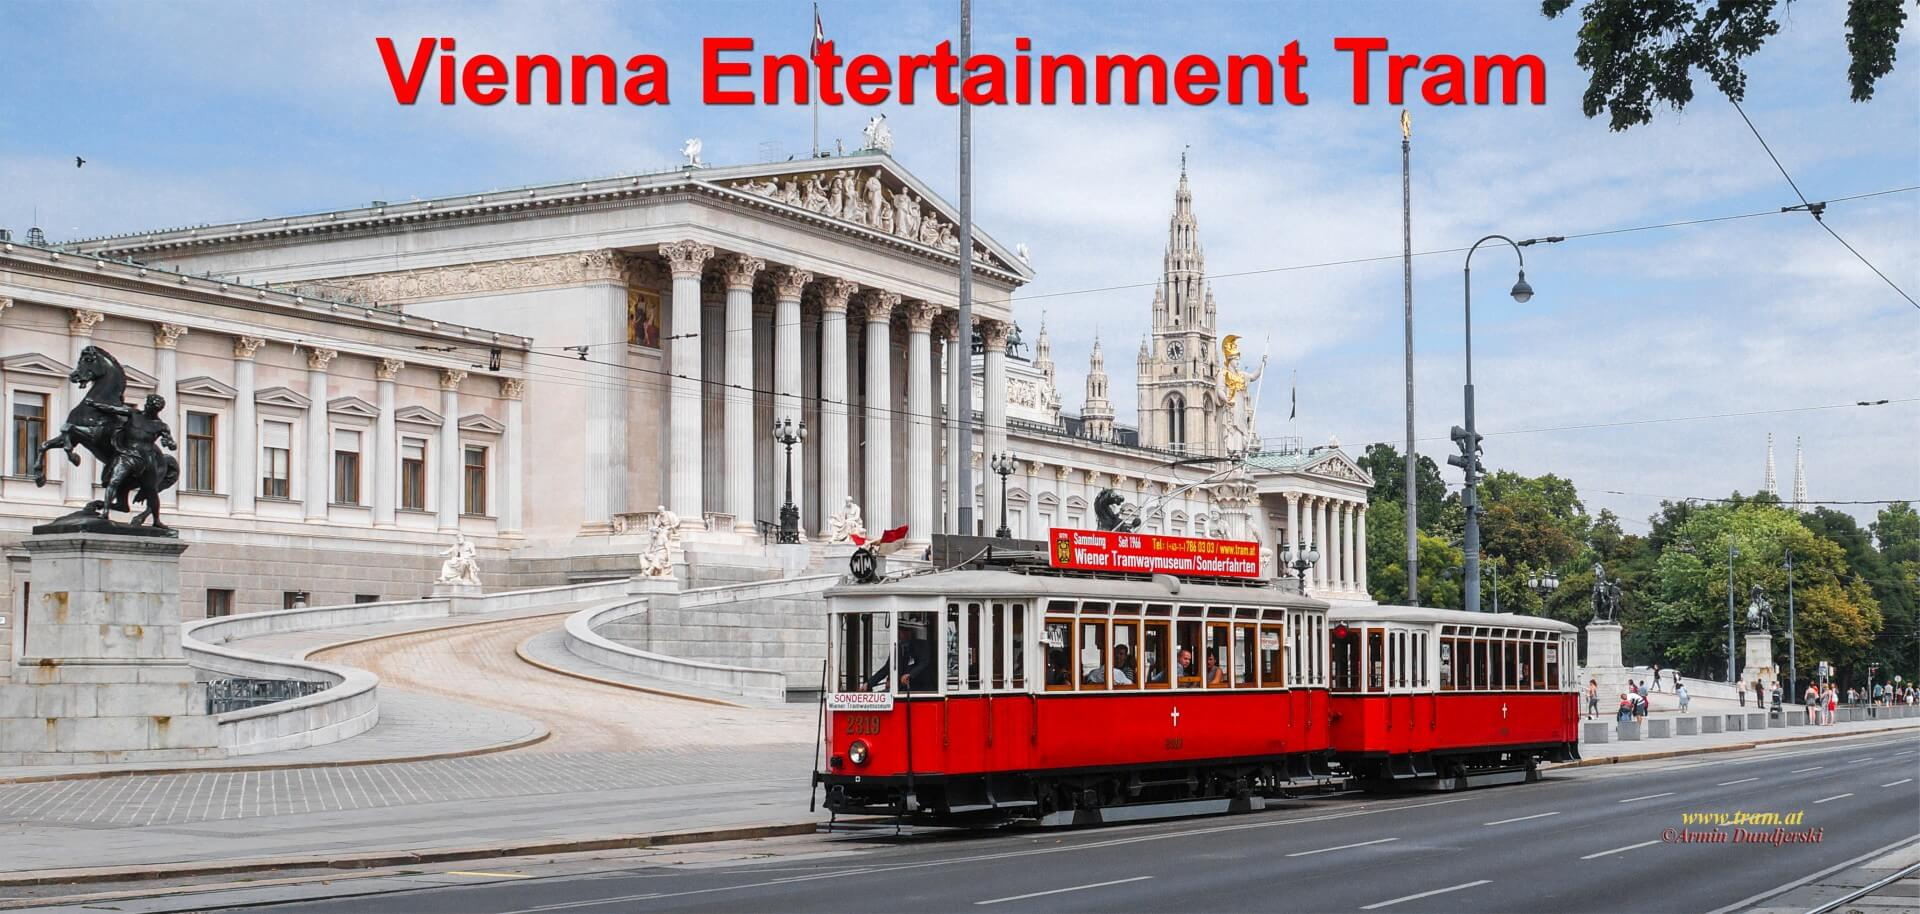 Vienna Entertainment Tram